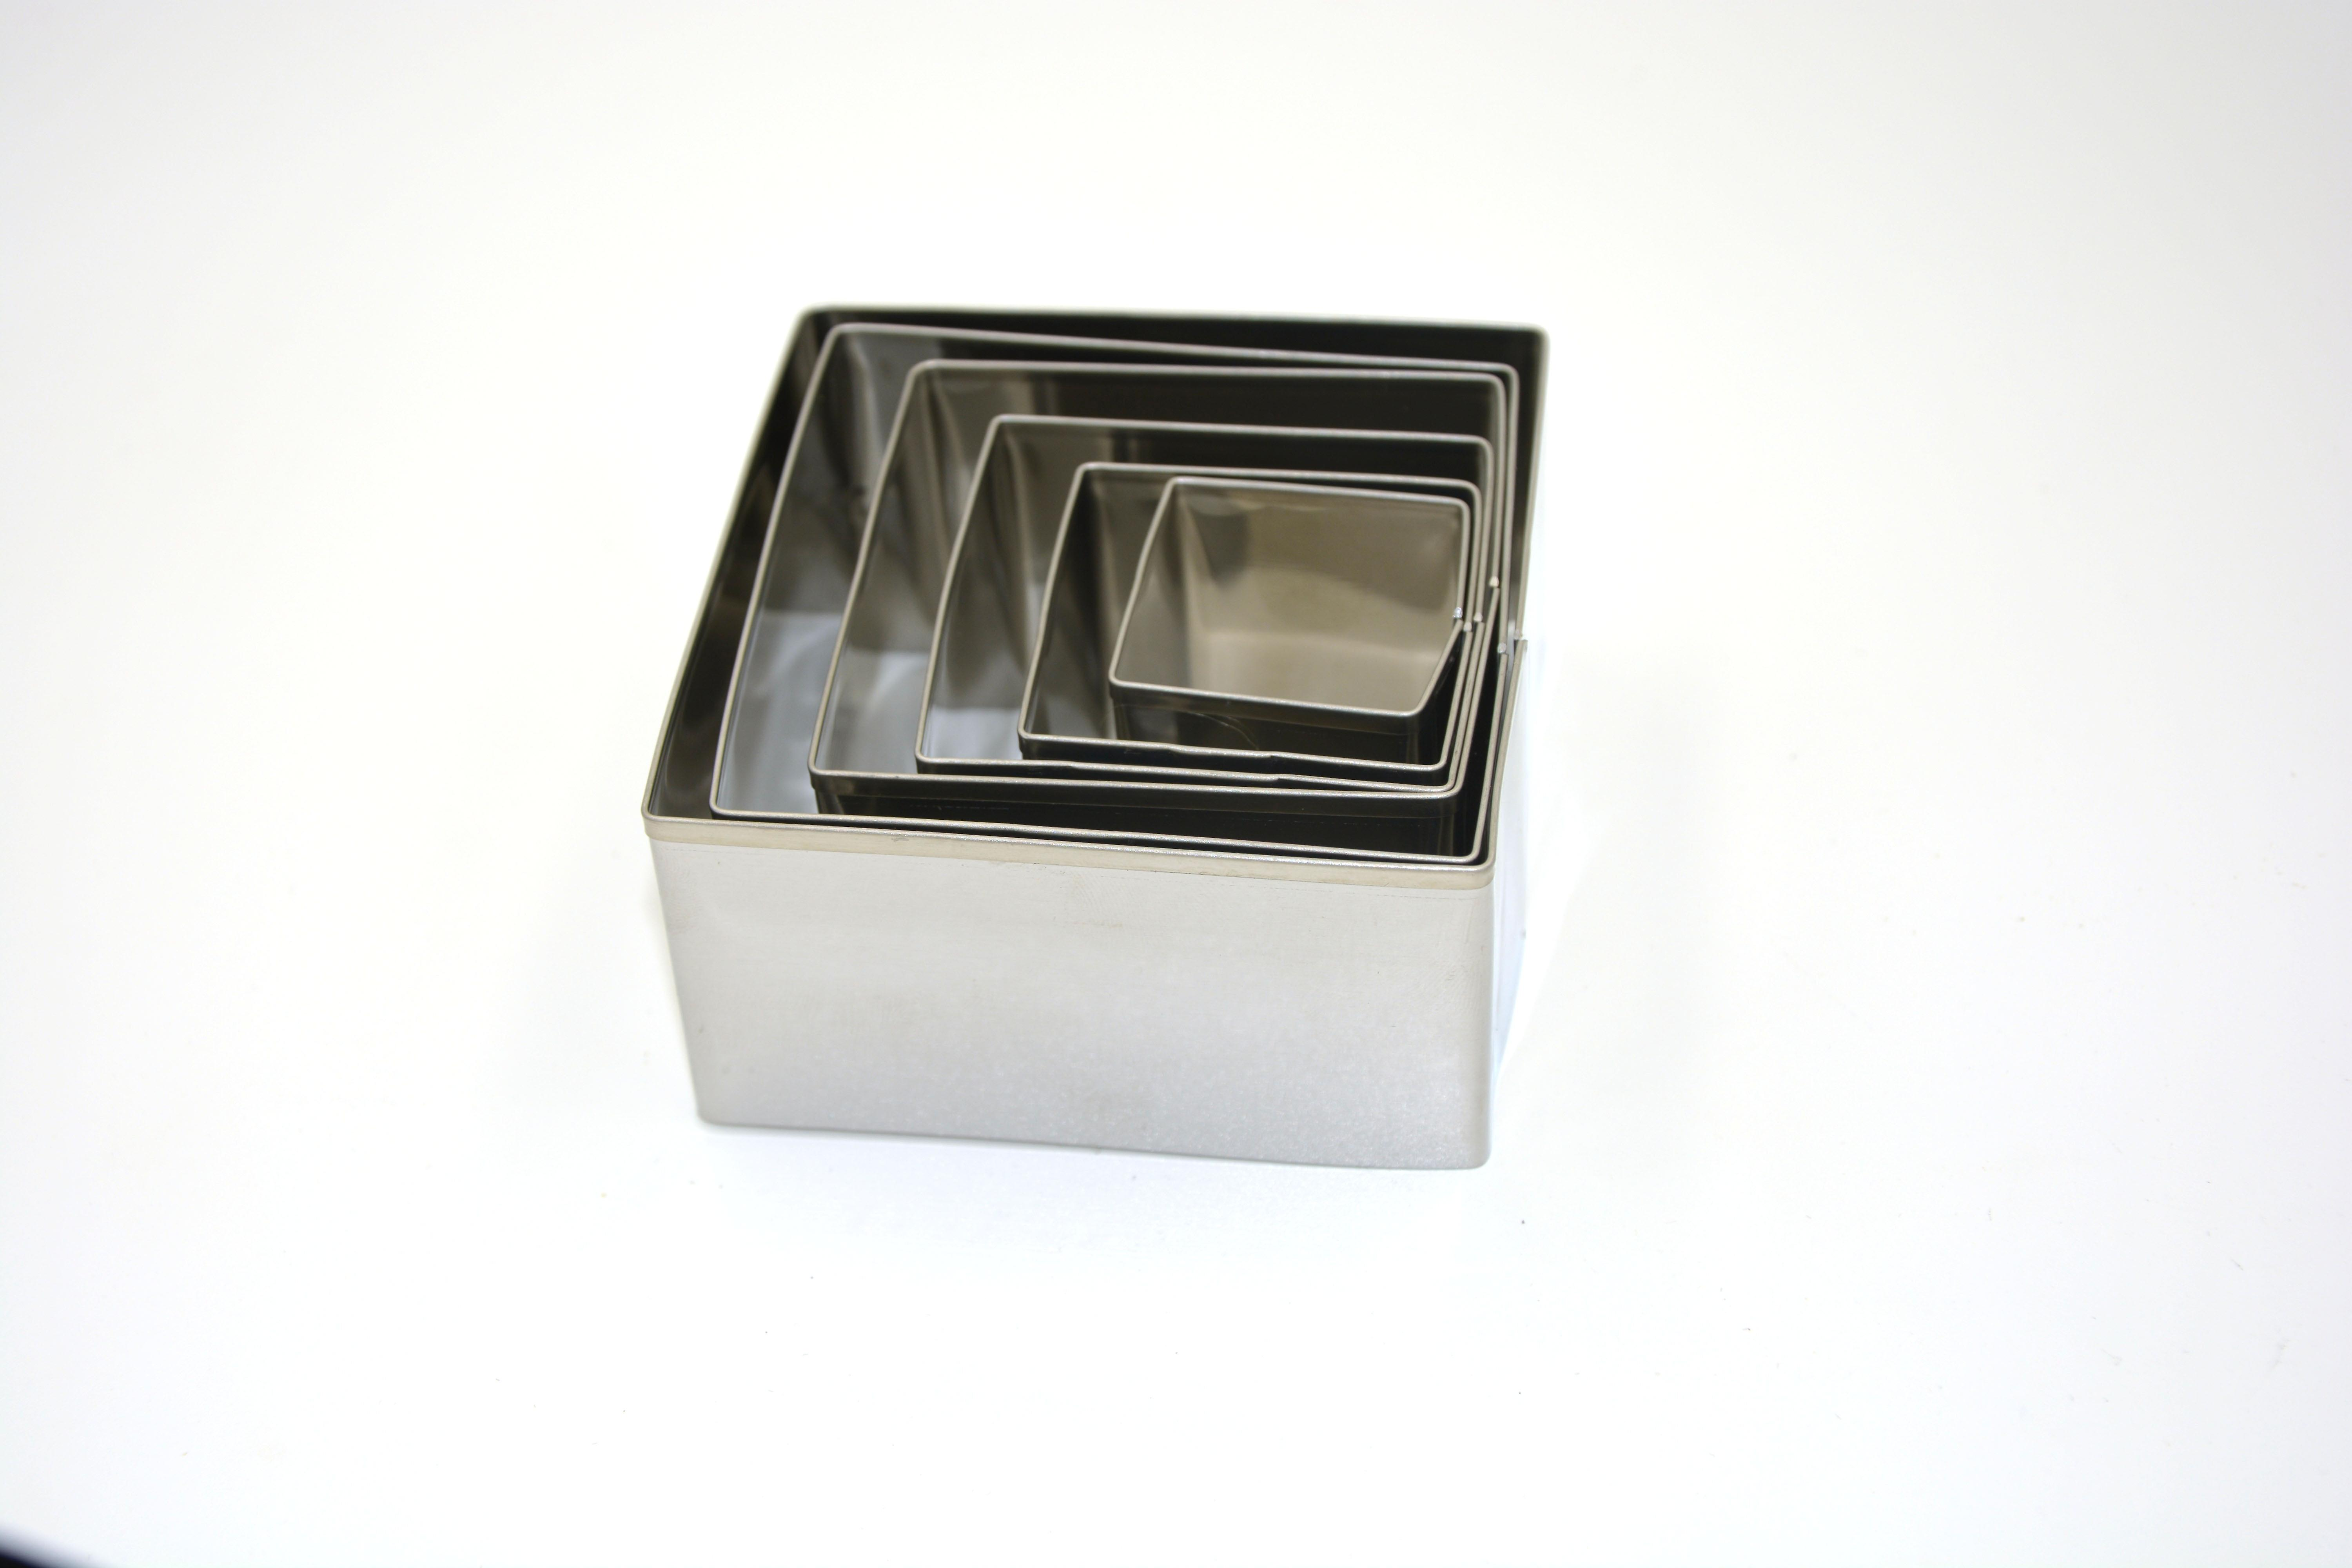 Set of 6 Kitchen Square Cookie Cutters